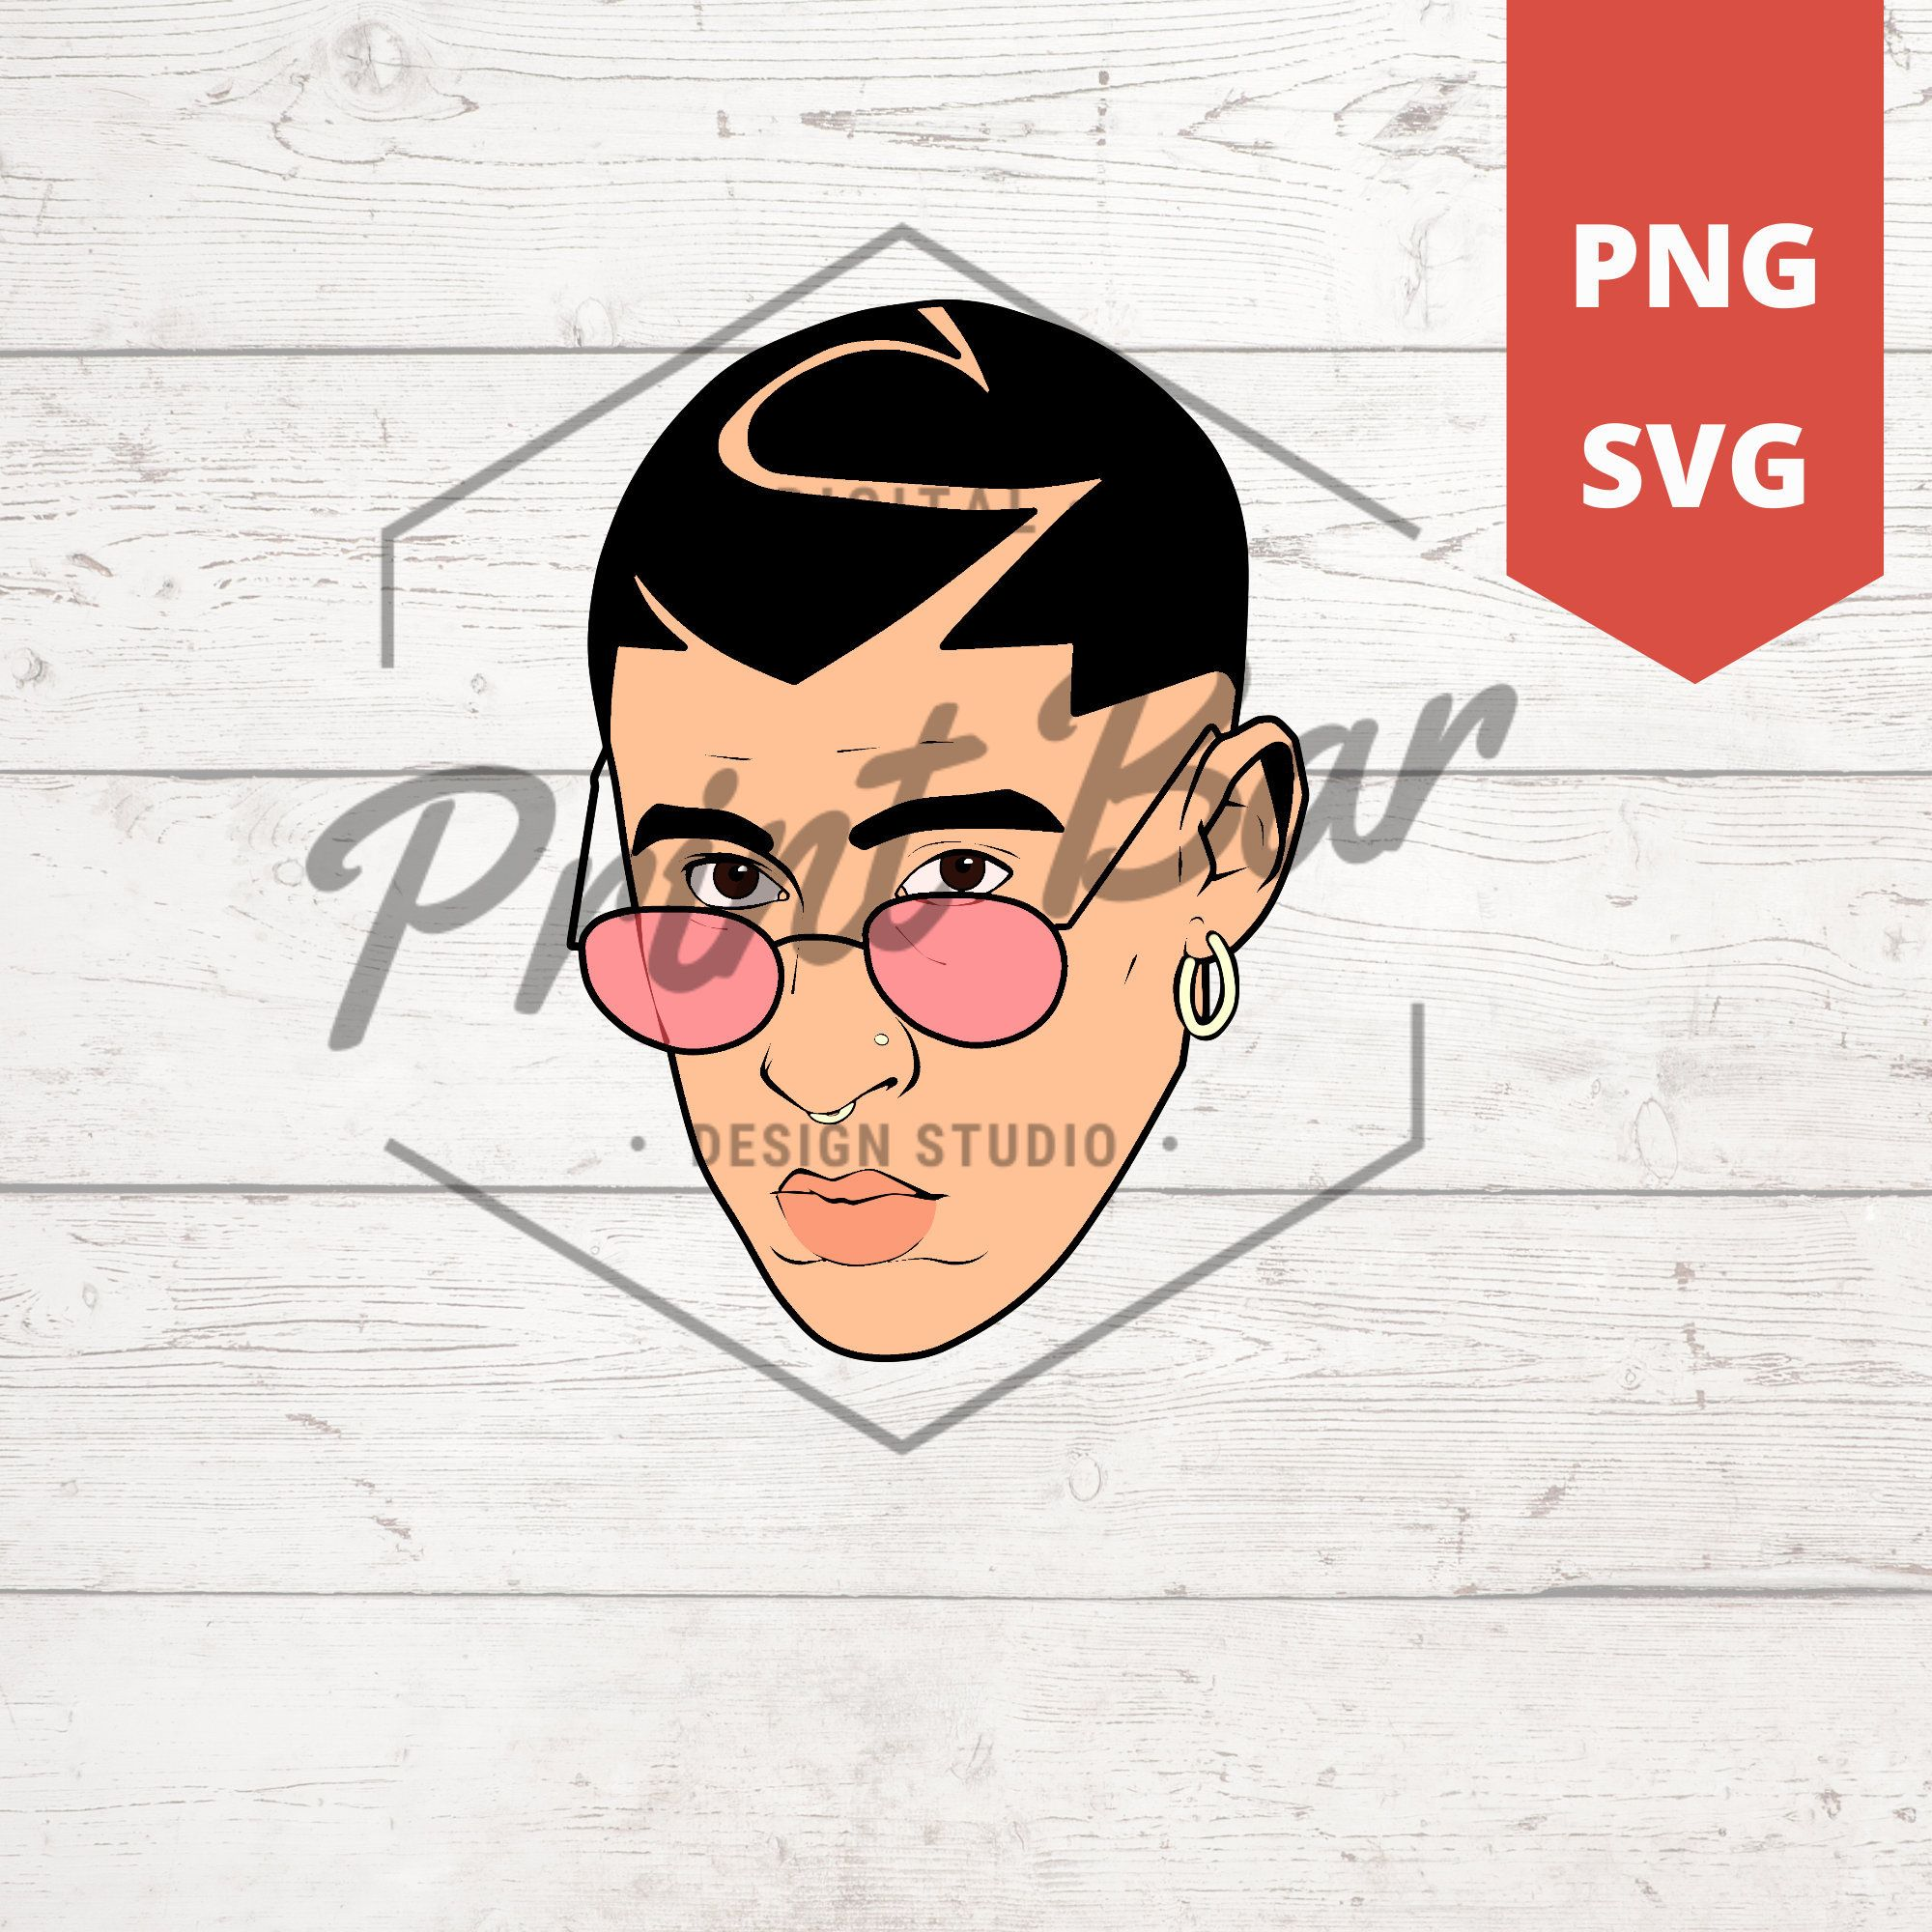 Bad Bunny face & logo SVG / PNG Etsy in 2020 Png, Svg